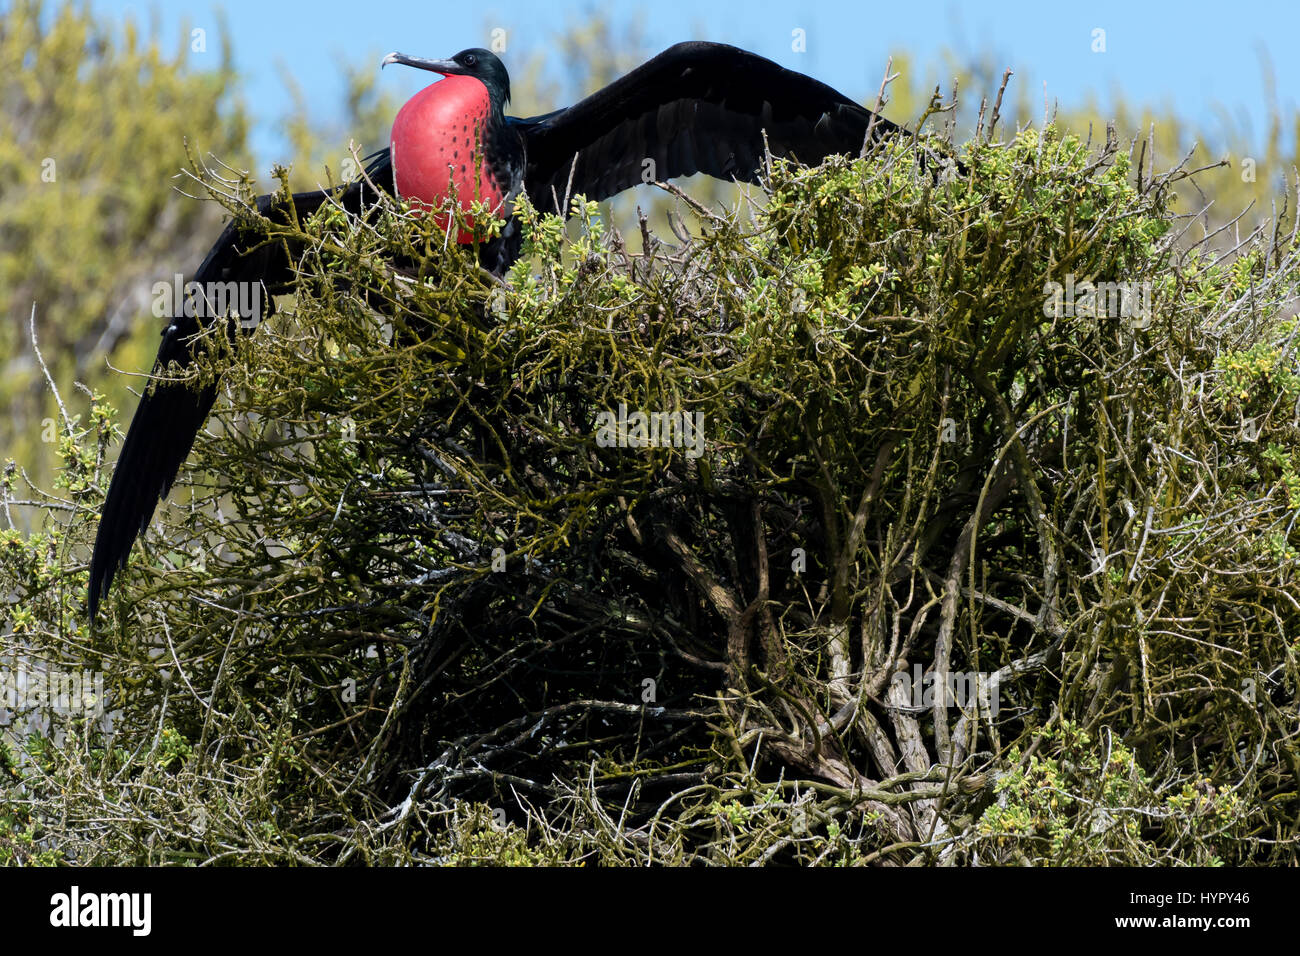 Male Great Frigatebird perched with wings extended on San Cristobal Island,  Galapagos Islands, Ecuador. - Stock Image